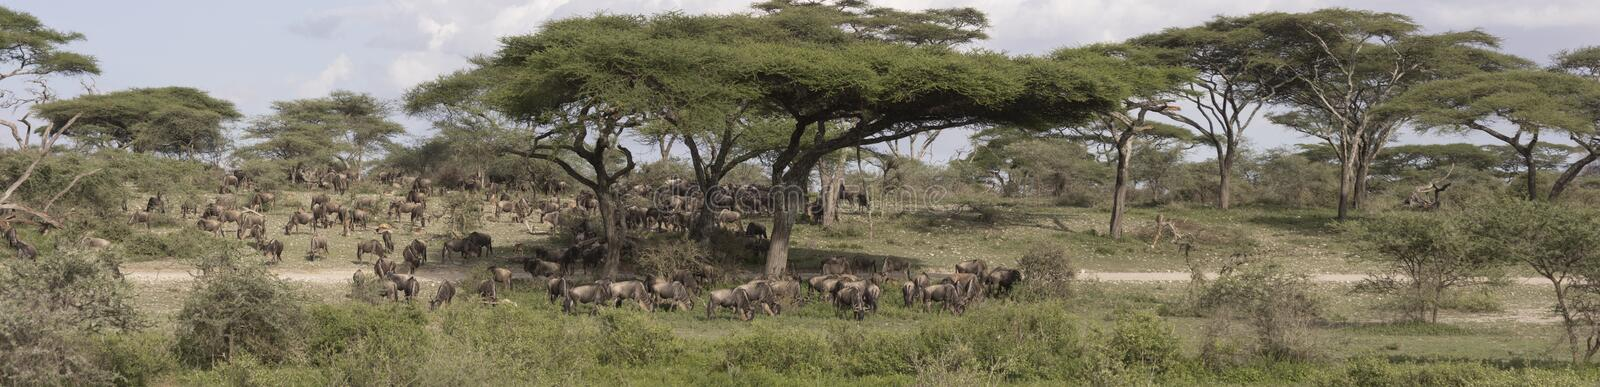 Panorama de grande migration de gnou, Serengeti photo libre de droits